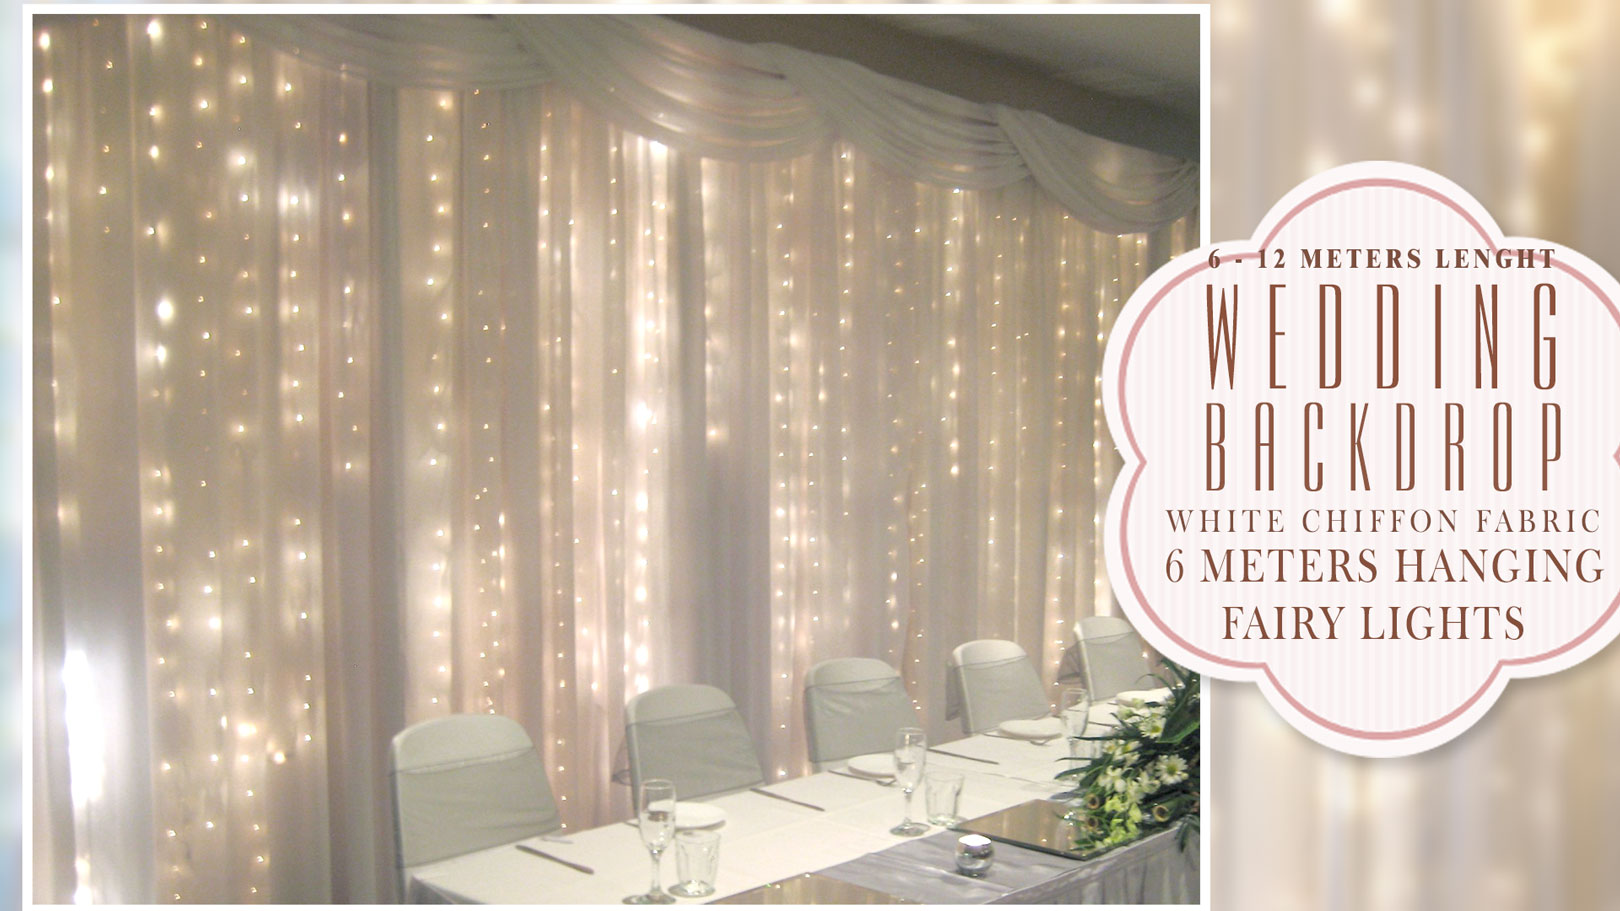 Diy Wedding Backdrop With Lights Wedding Backdrop Archives Wedding Decorations By Naz